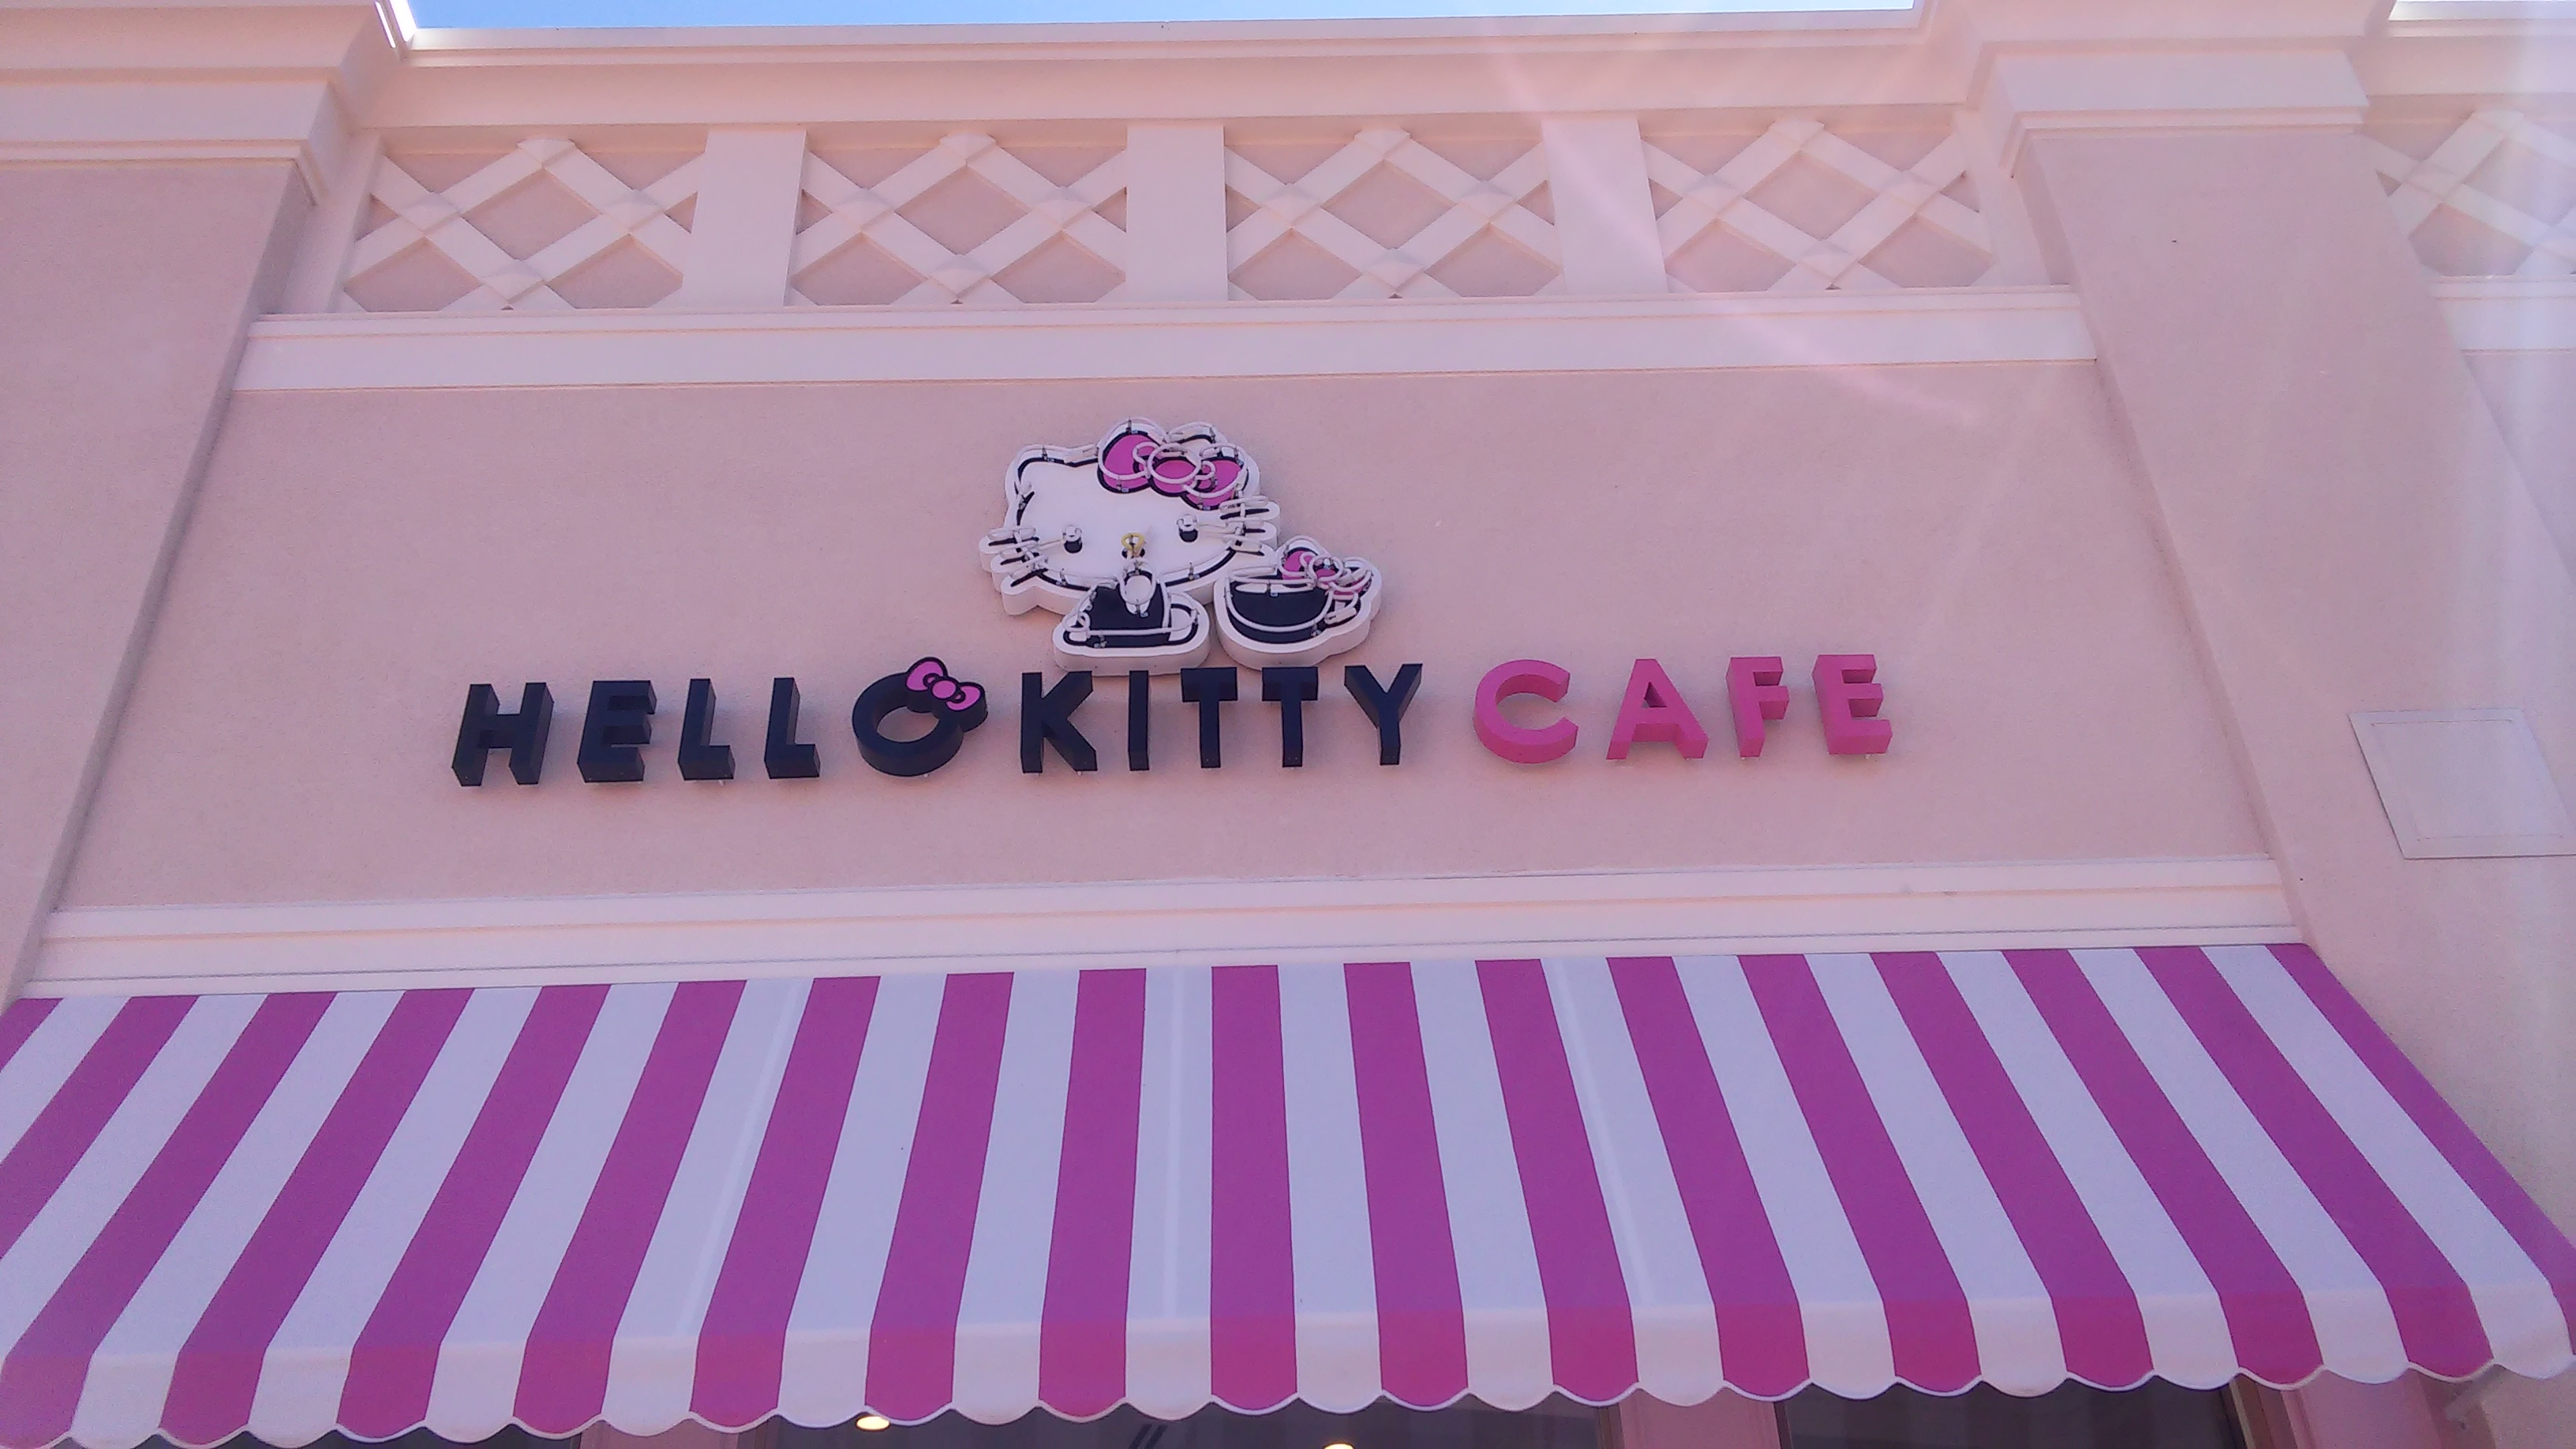 Splendent Irvine Hs Insider Hello Kitty Cafe Irvine Menu Prices Hello Kitty Cafe Irvine Spectrum Variety Since Hello Kitty Cafe Many Have Enjoyed Its Atmosphere By Stephanie Hello Kitty Cafe Open nice food Hello Kitty Cafe Irvine